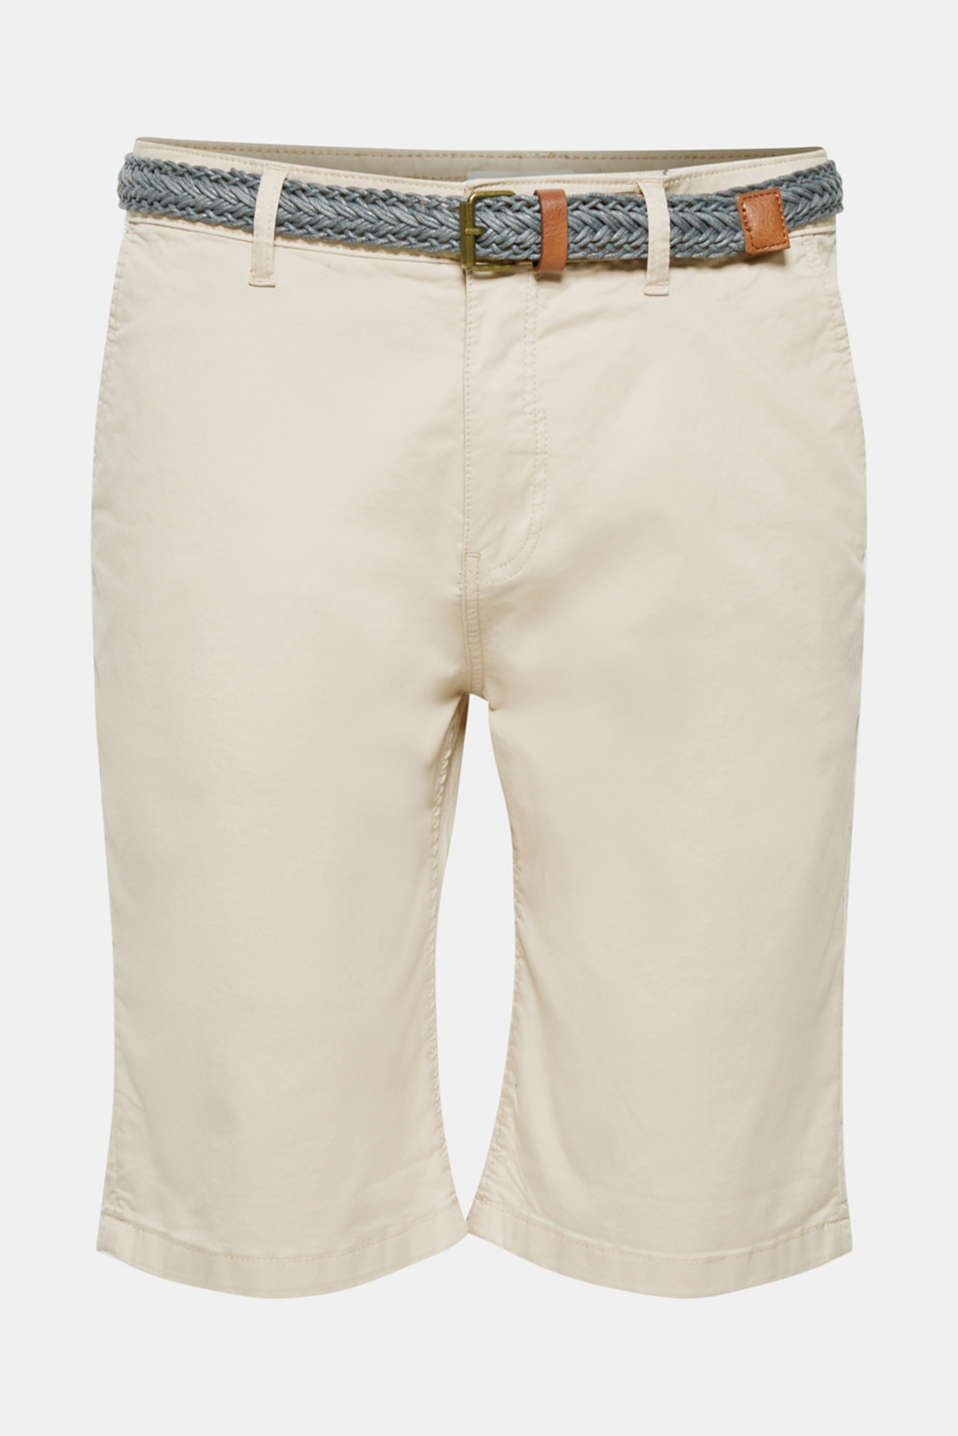 Chino shorts with a braided belt, LIGHT BEIGE, detail image number 5